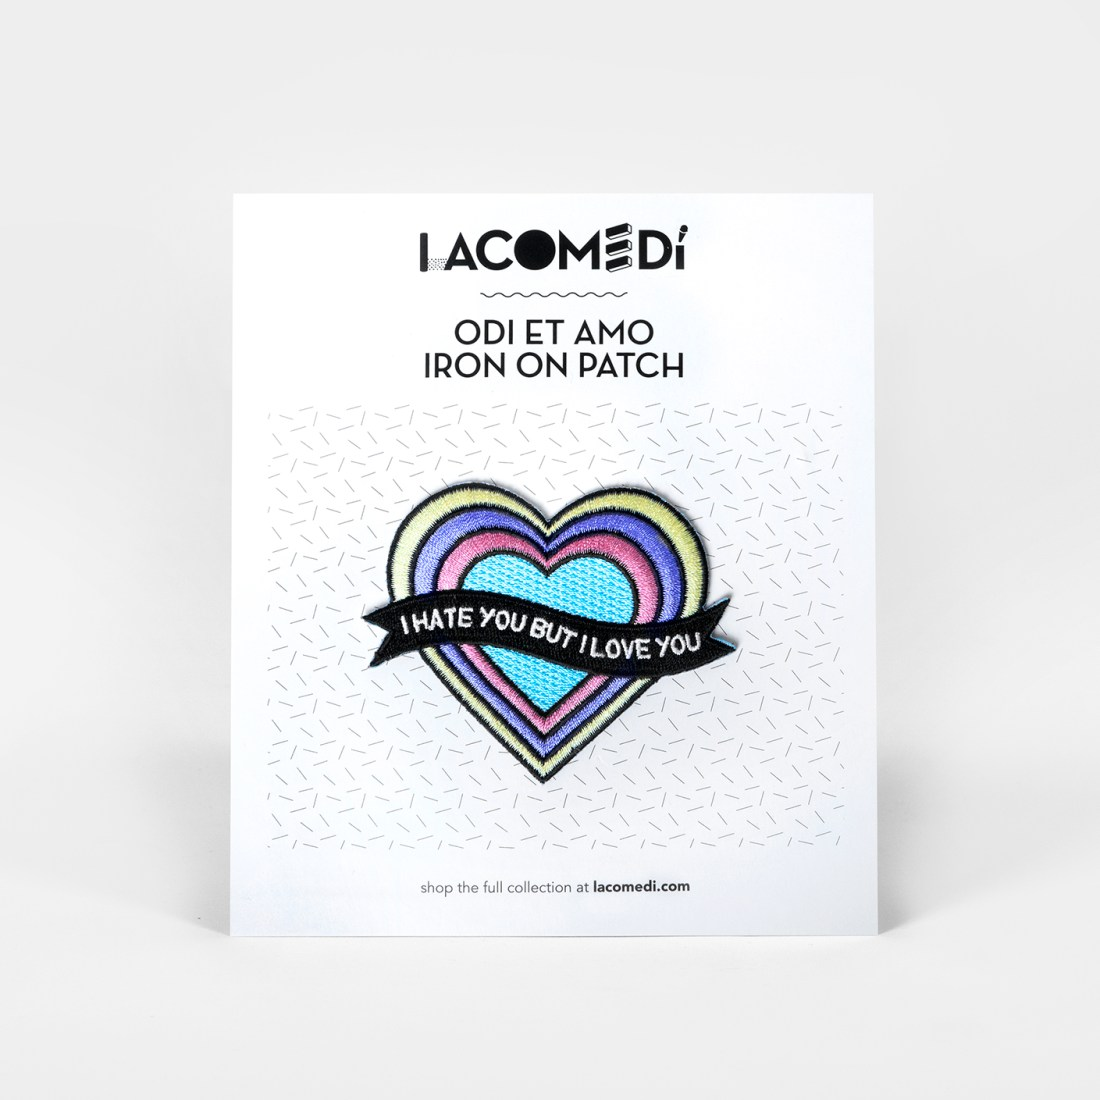 Odi Et Amo Patch by La Come Di